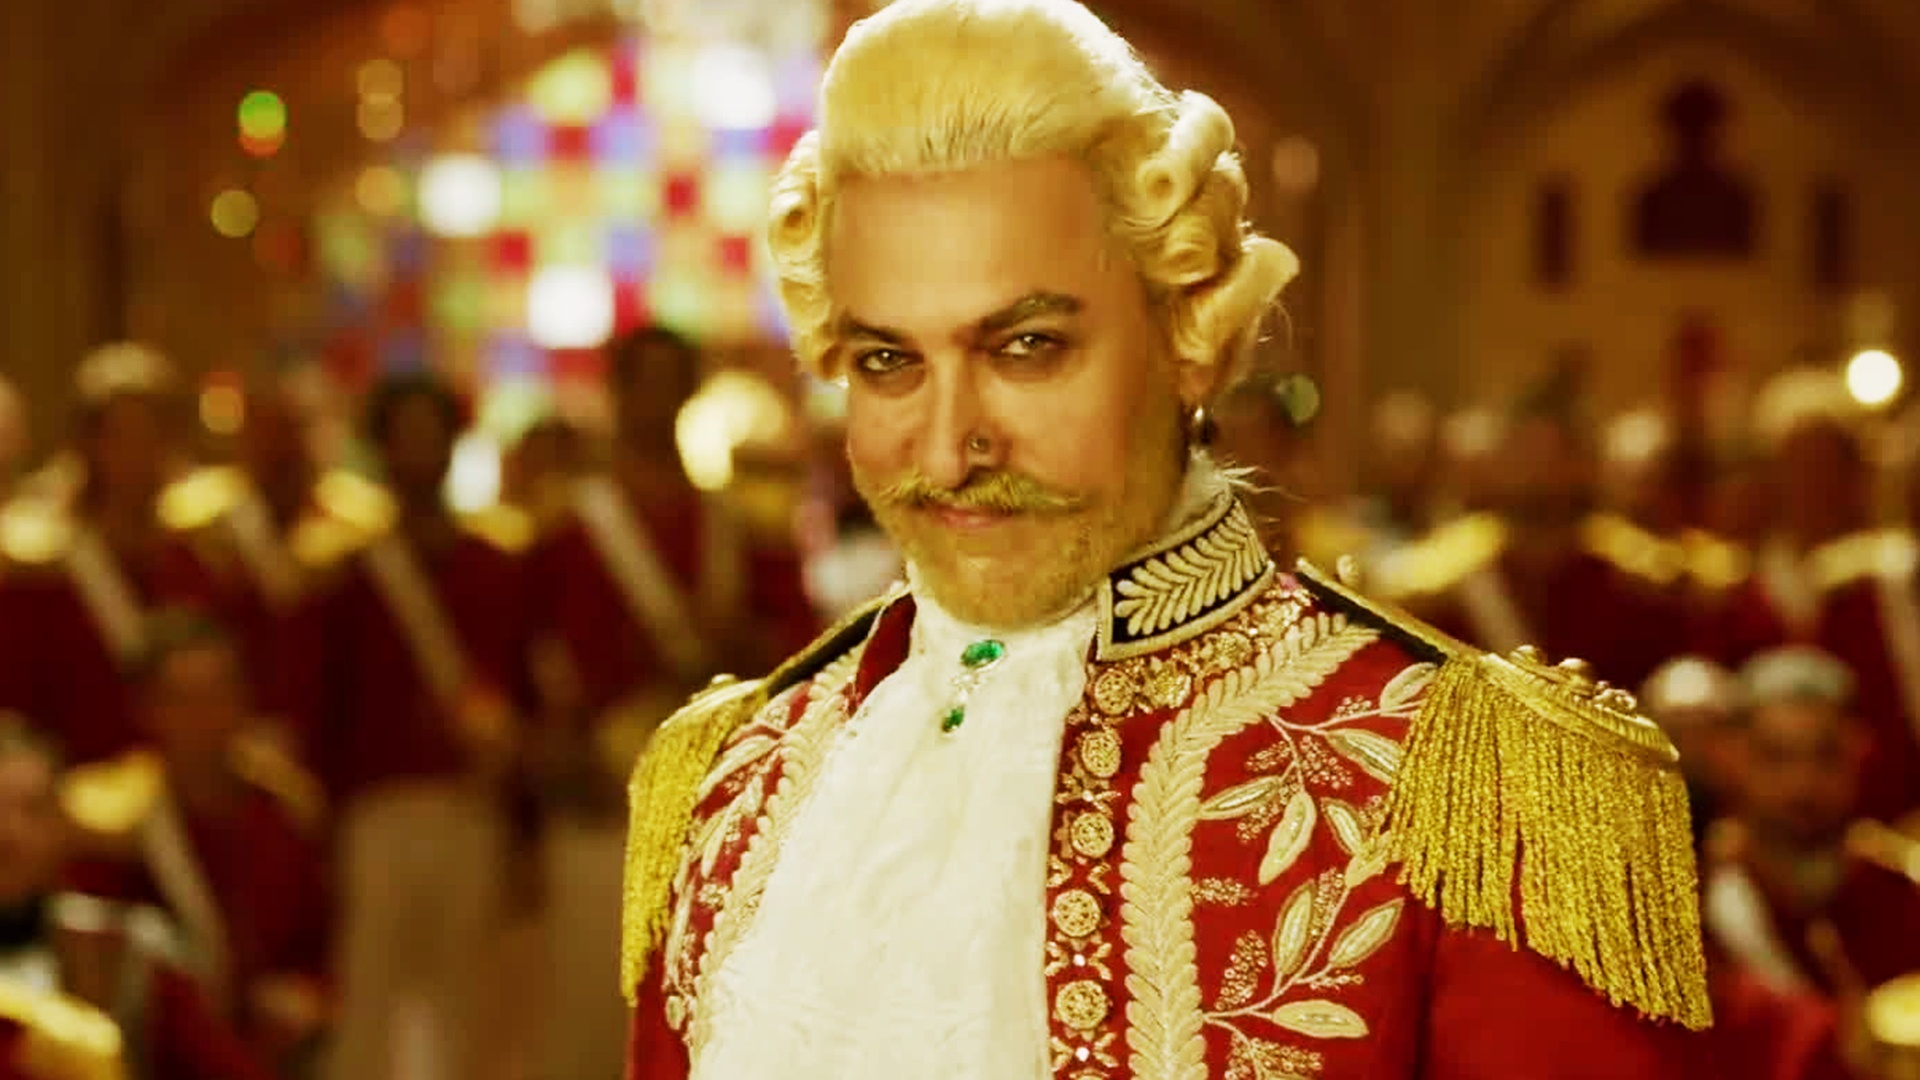 Aamir's character works in a few parts but it is a laboured performance